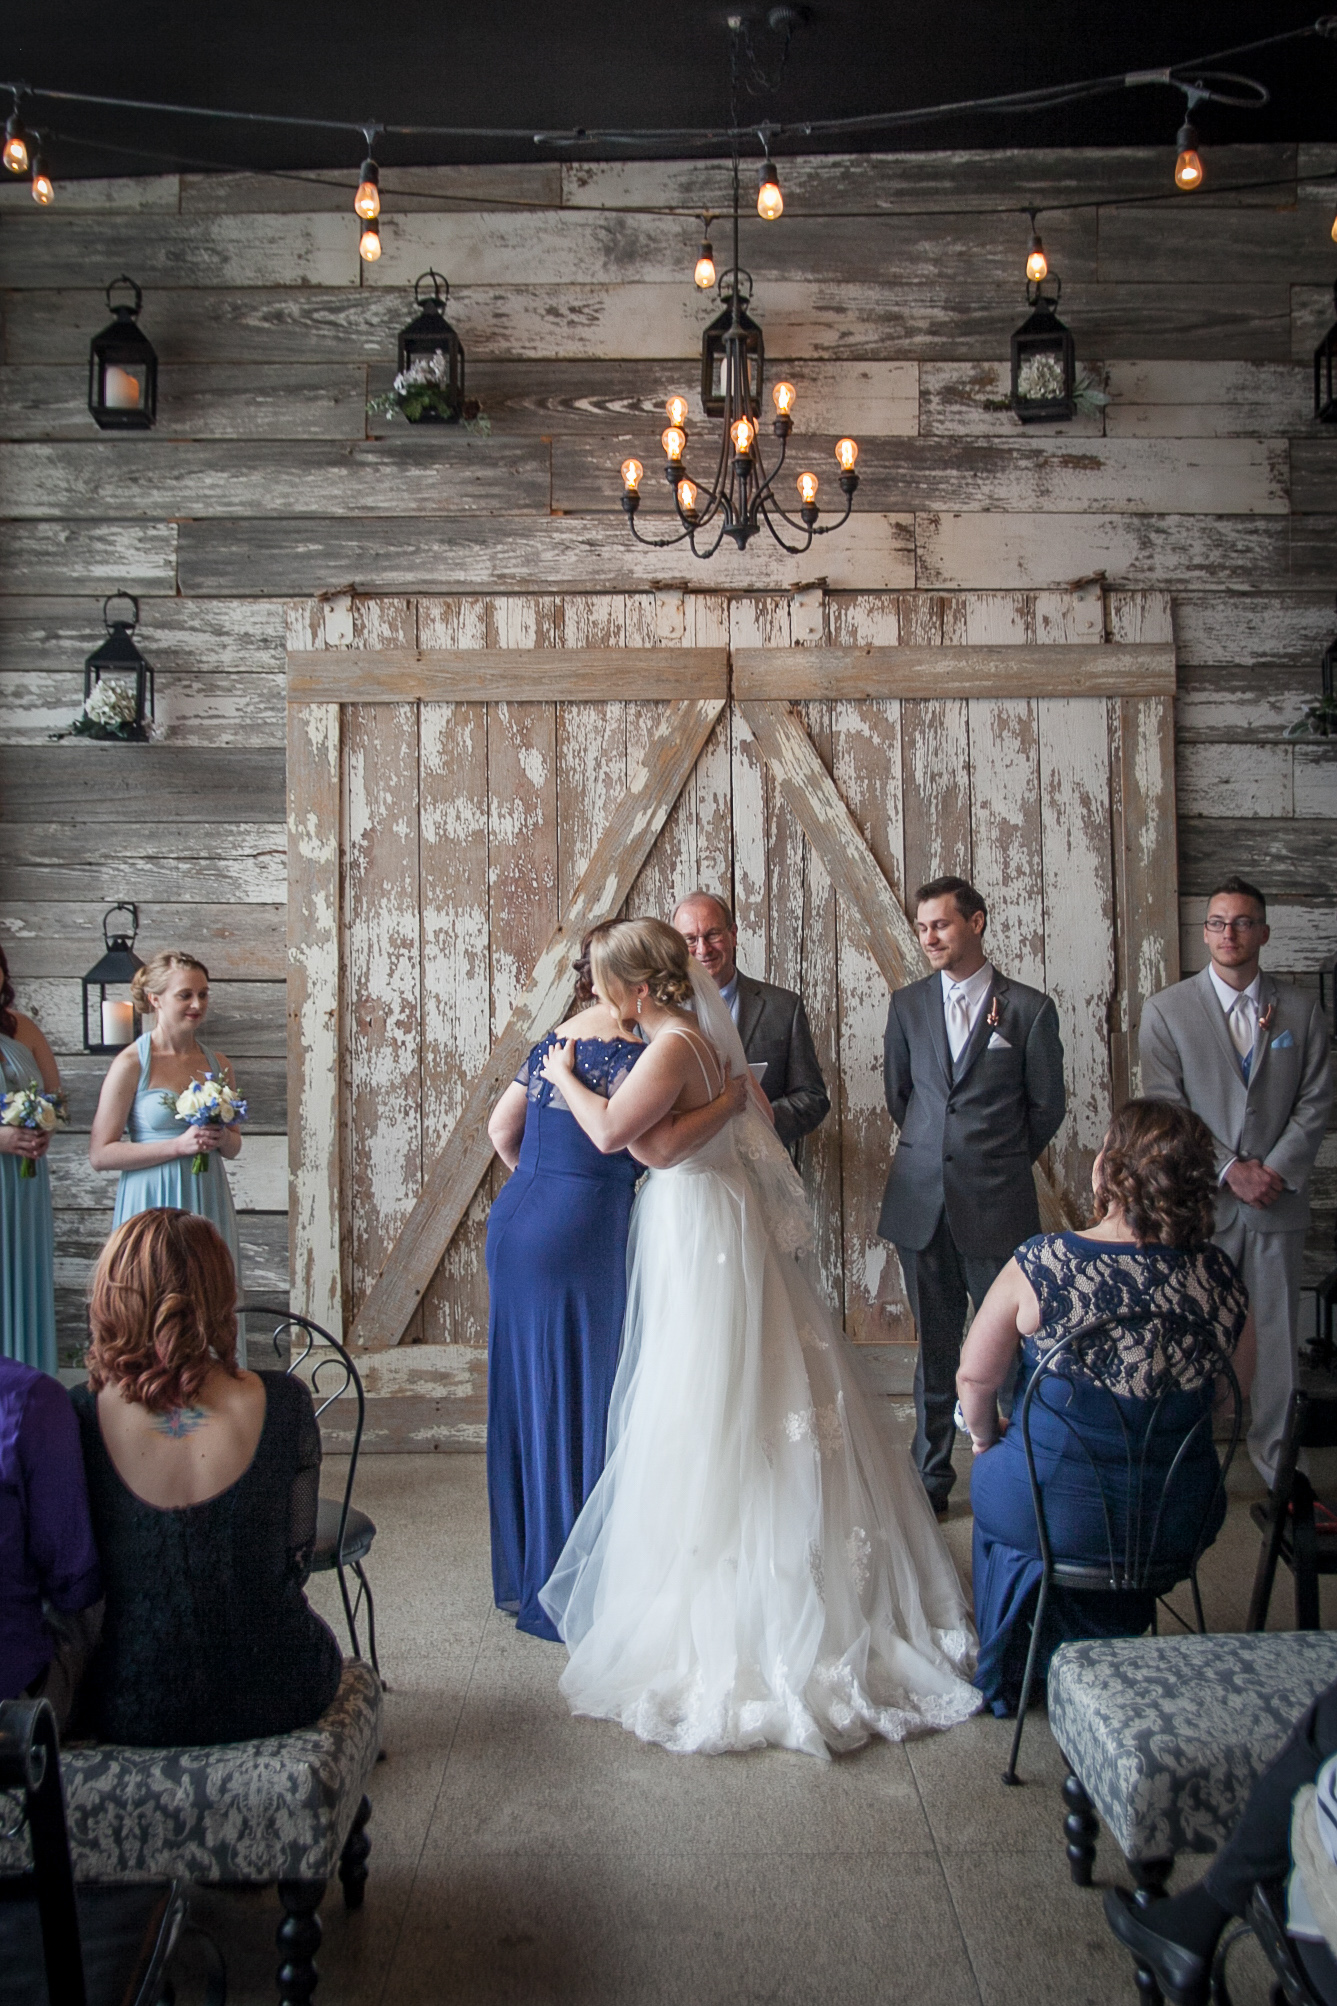 Wedding_Day_Moments_To_Do_List_Wedding Day-70.jpg